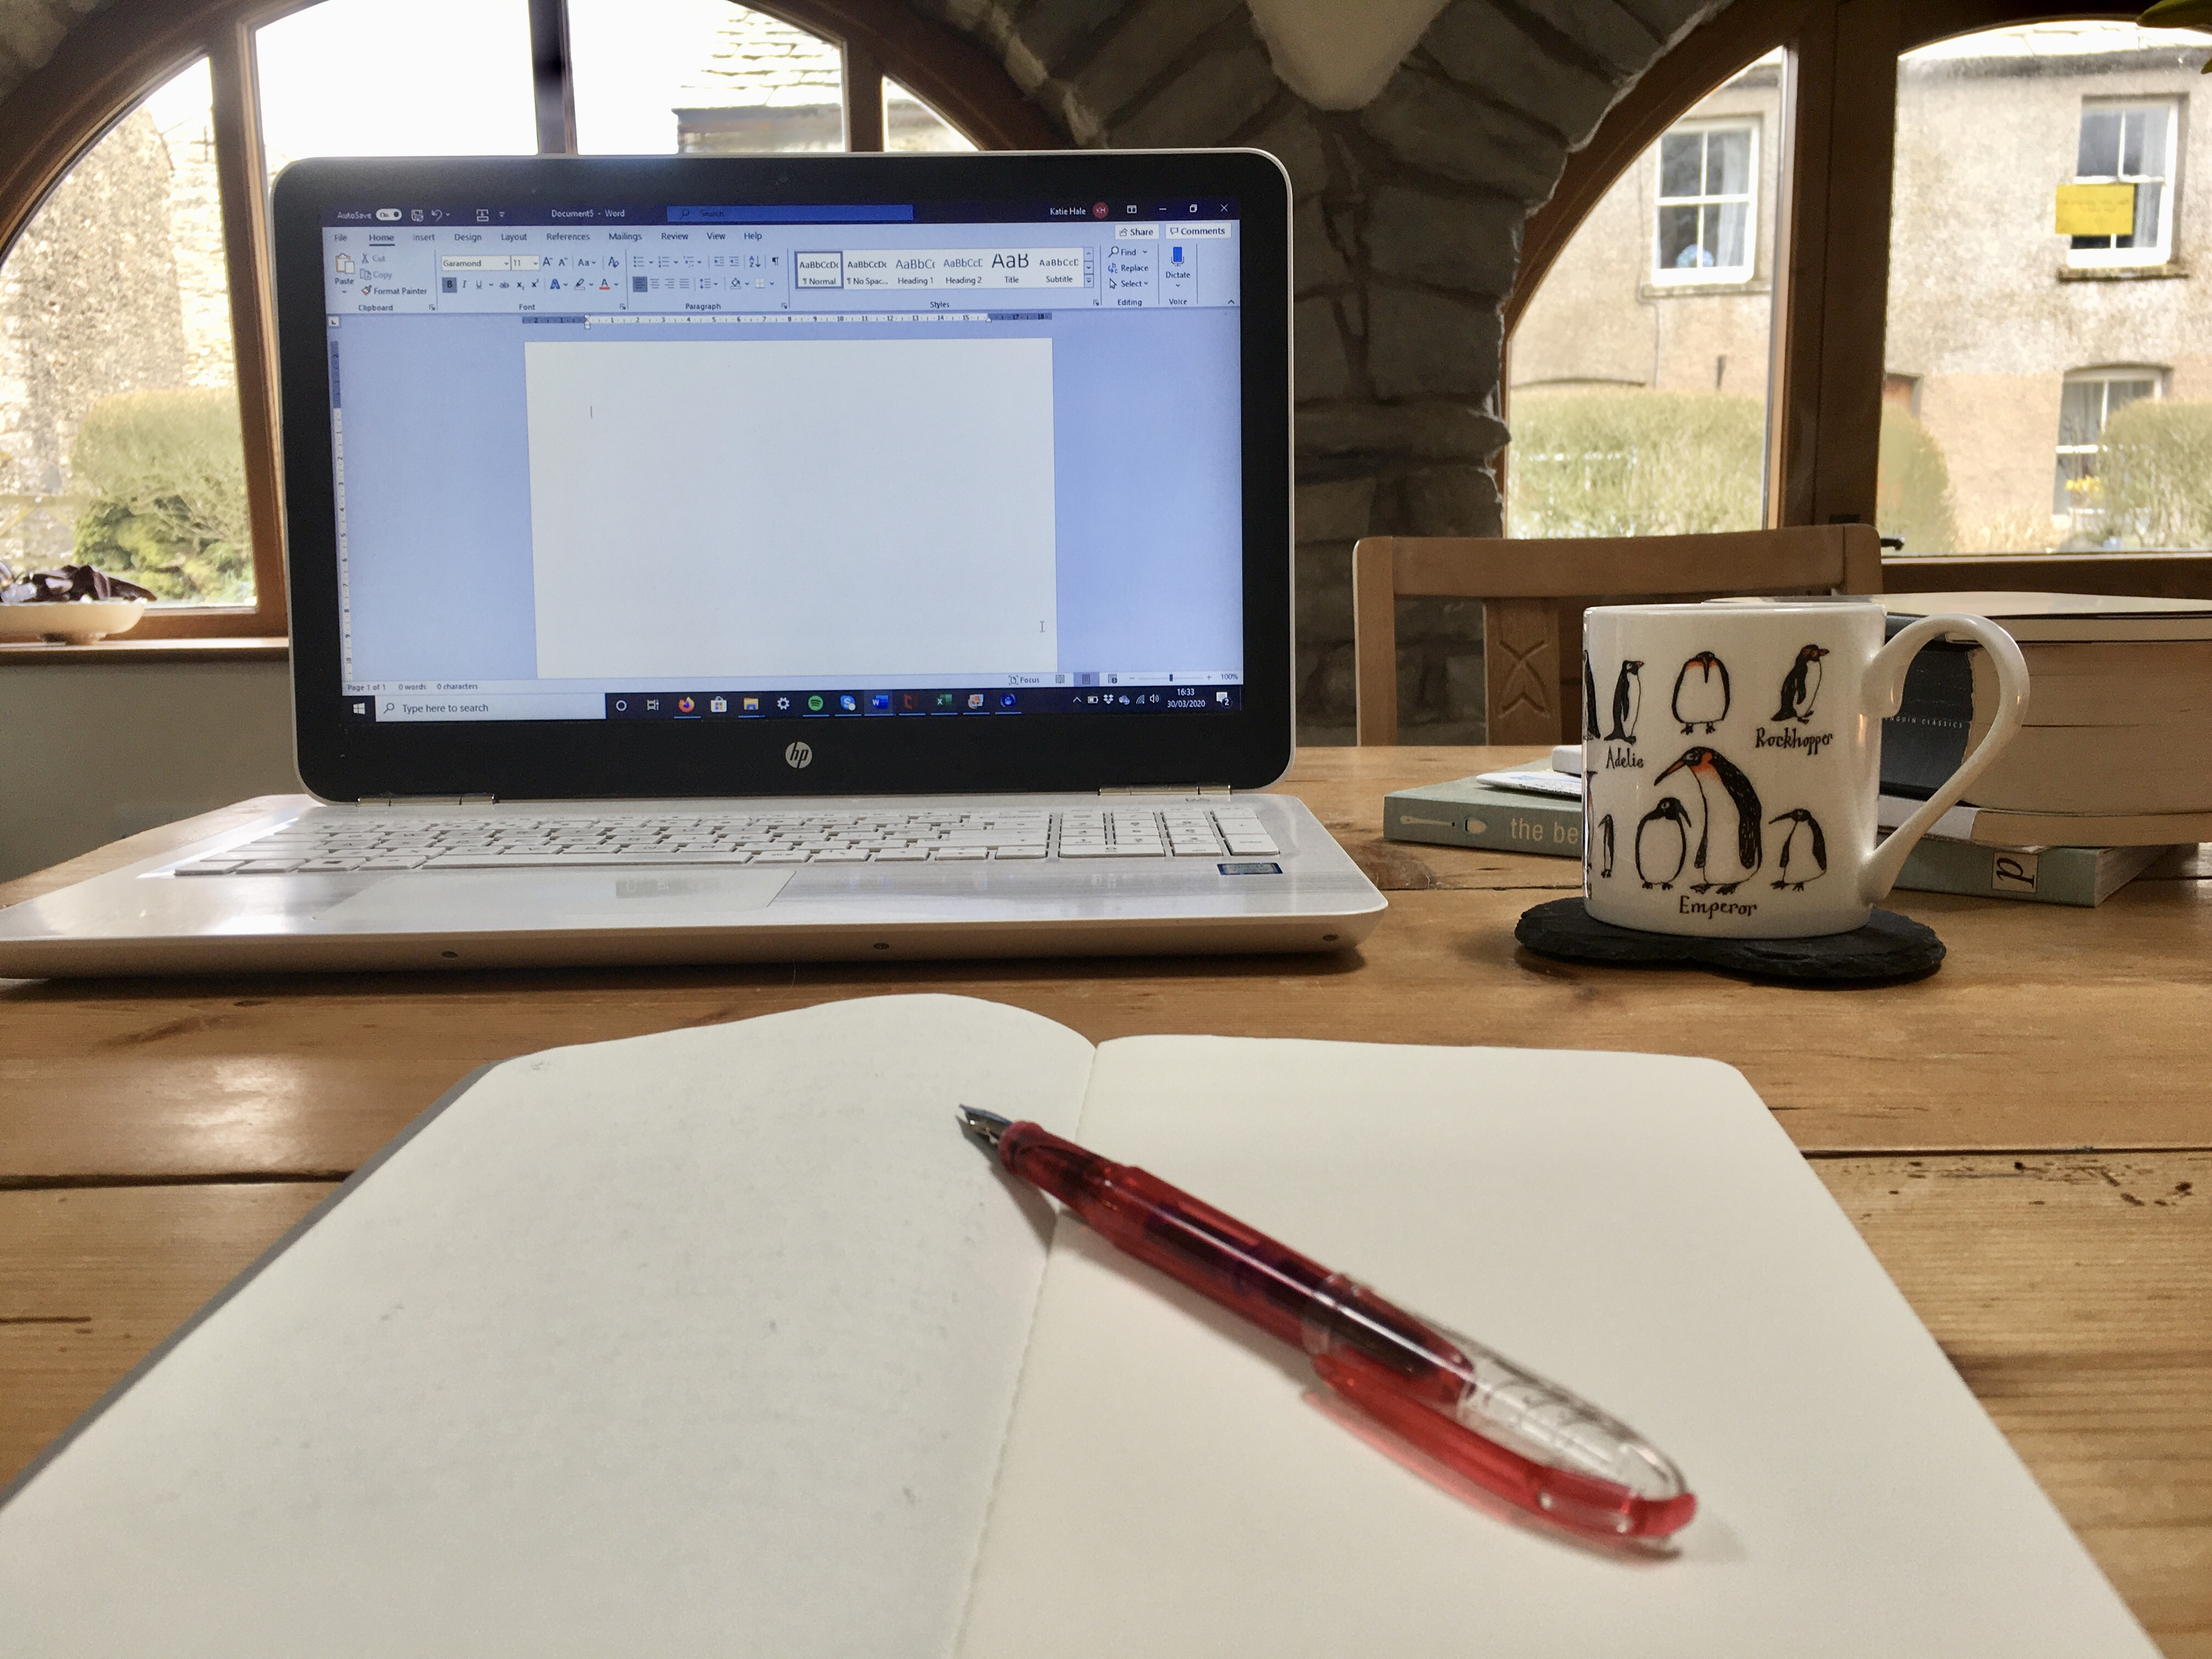 Notebook, pen, laptop and coffee mug on a kitchen table